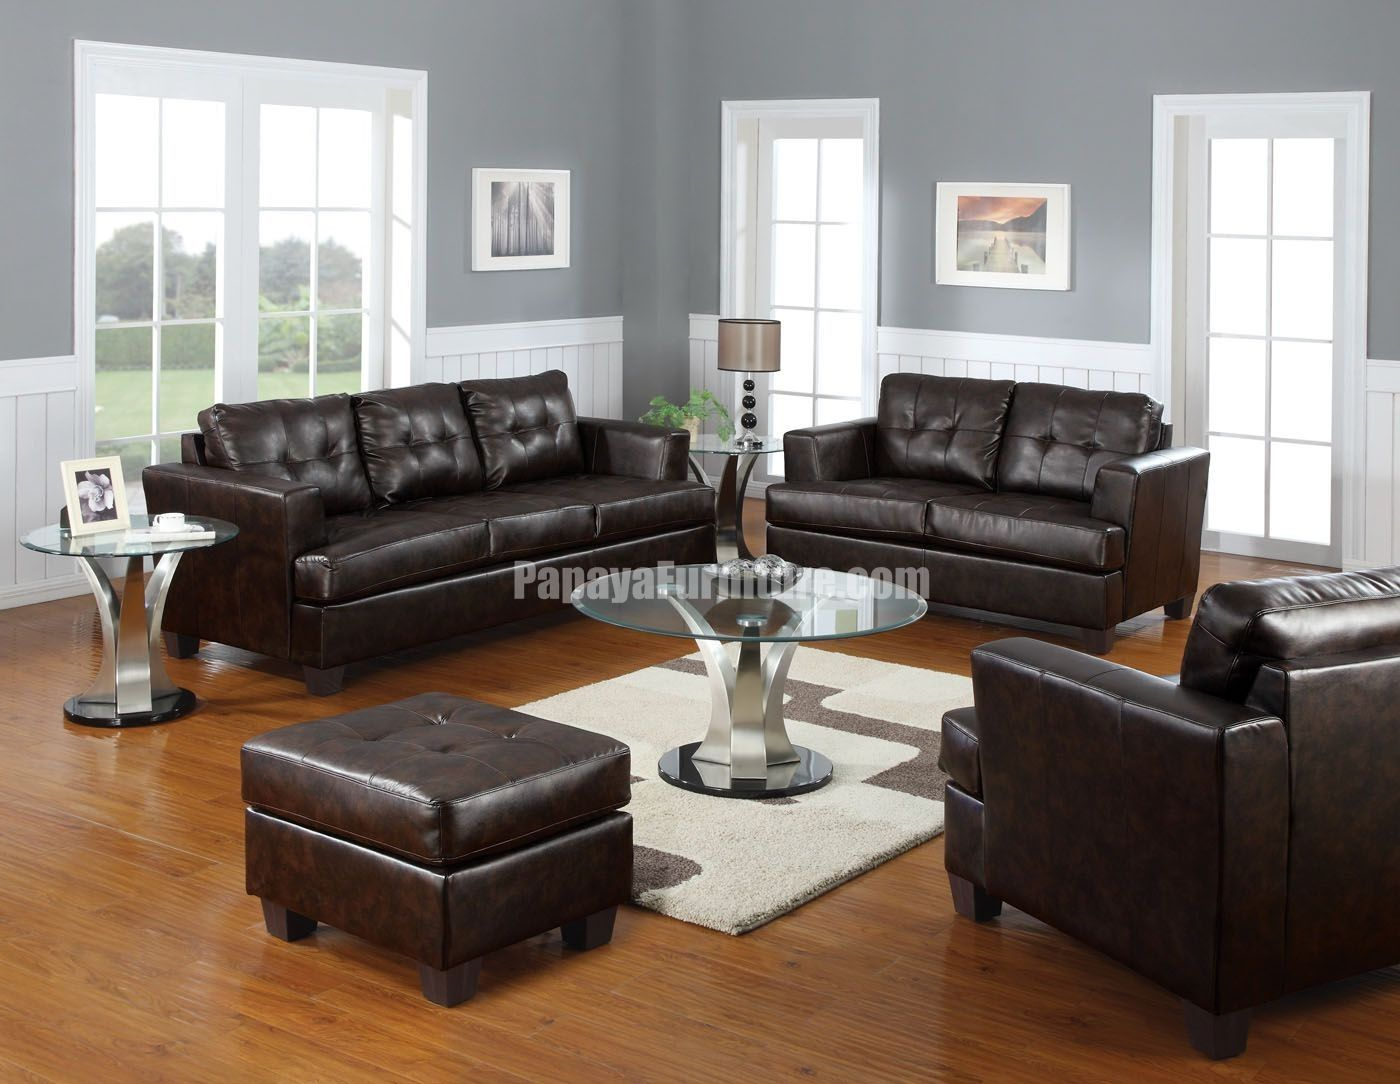 collection black couch living room ideas pictures. Dark Brown Couch Decorating Ideas | Leather Couches Collection Black Living Room Pictures O